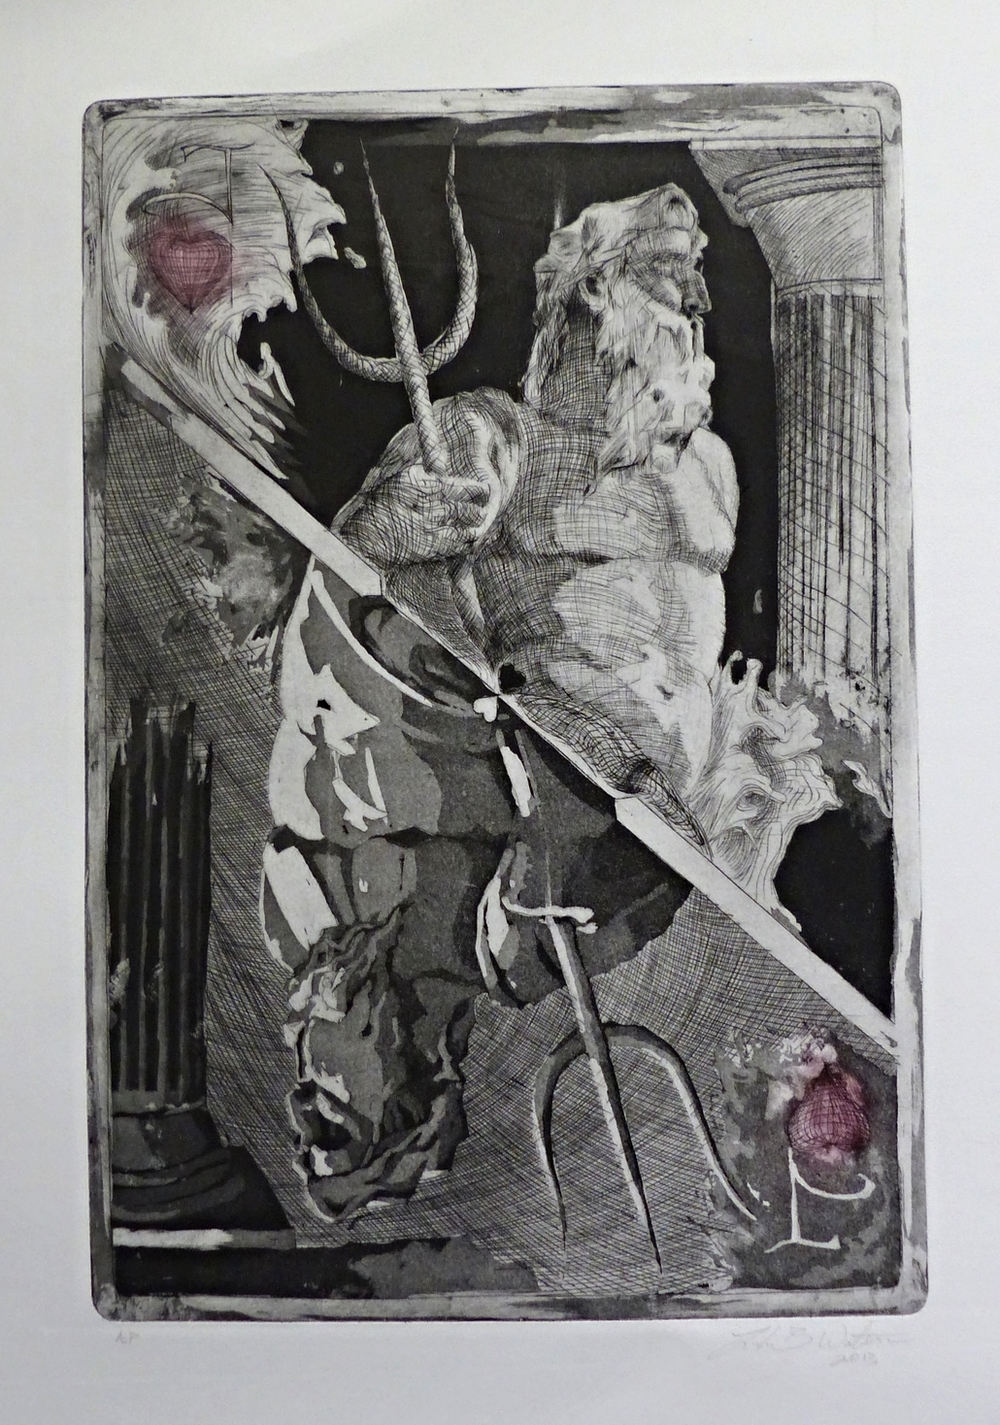 Luke Watson,  One Eyed Jack , engraving and aquatint, 2013